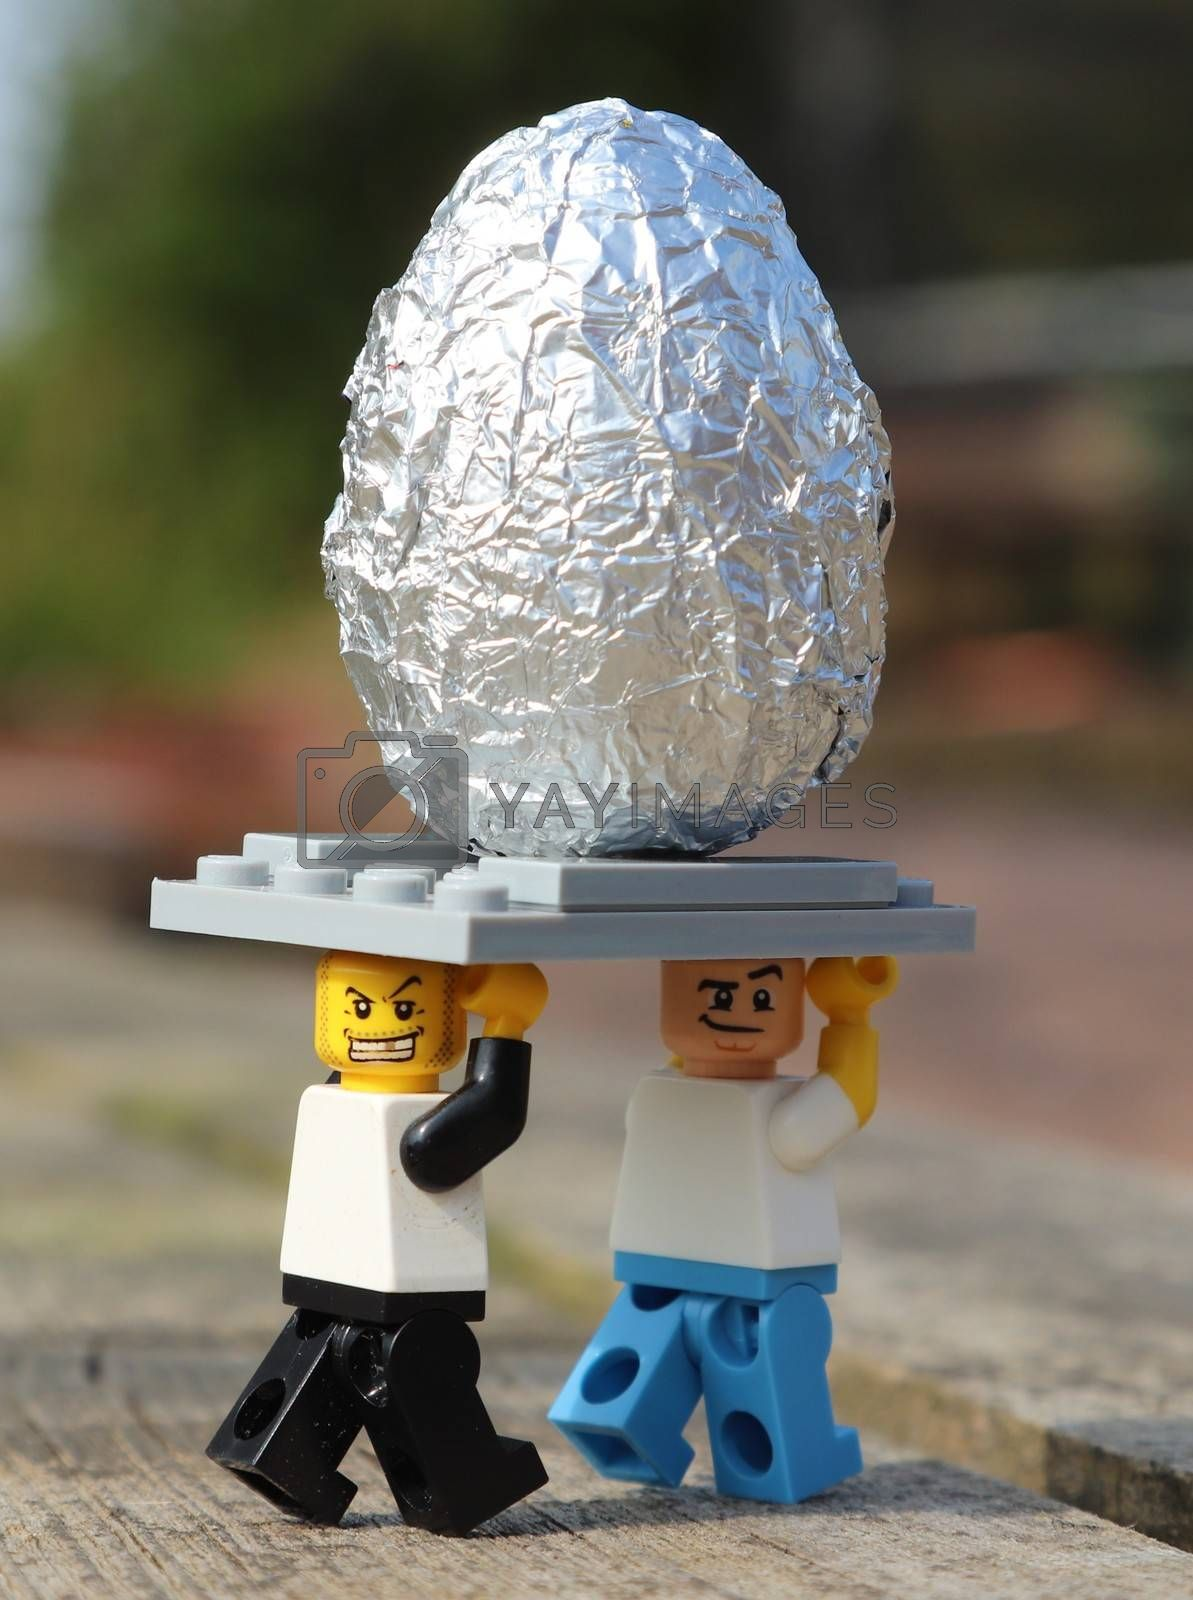 Two Lego people carrying away a silver Easter egg outside in sunshine